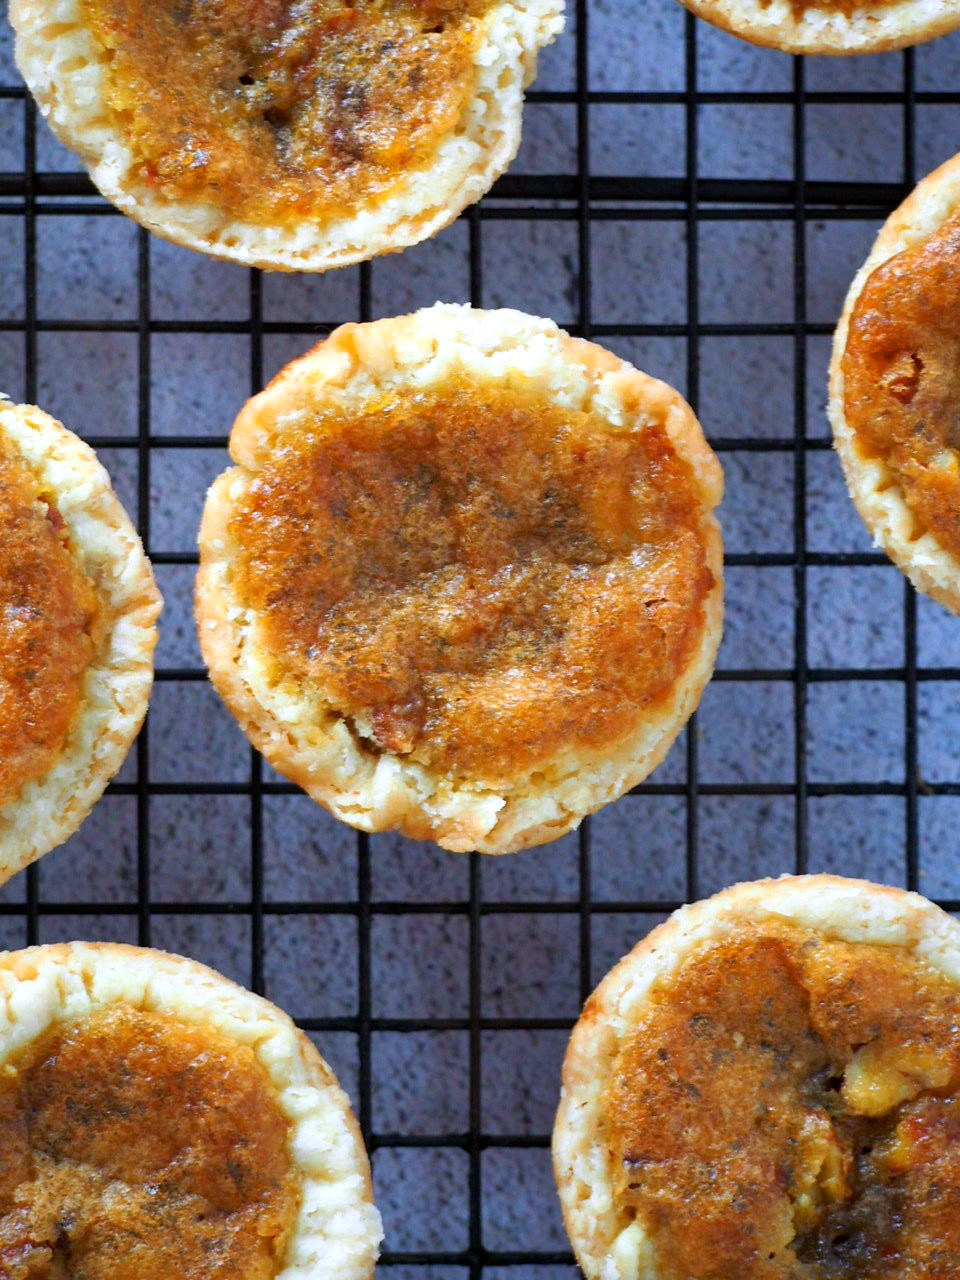 Close up view of a butter tart on a cooling rack.